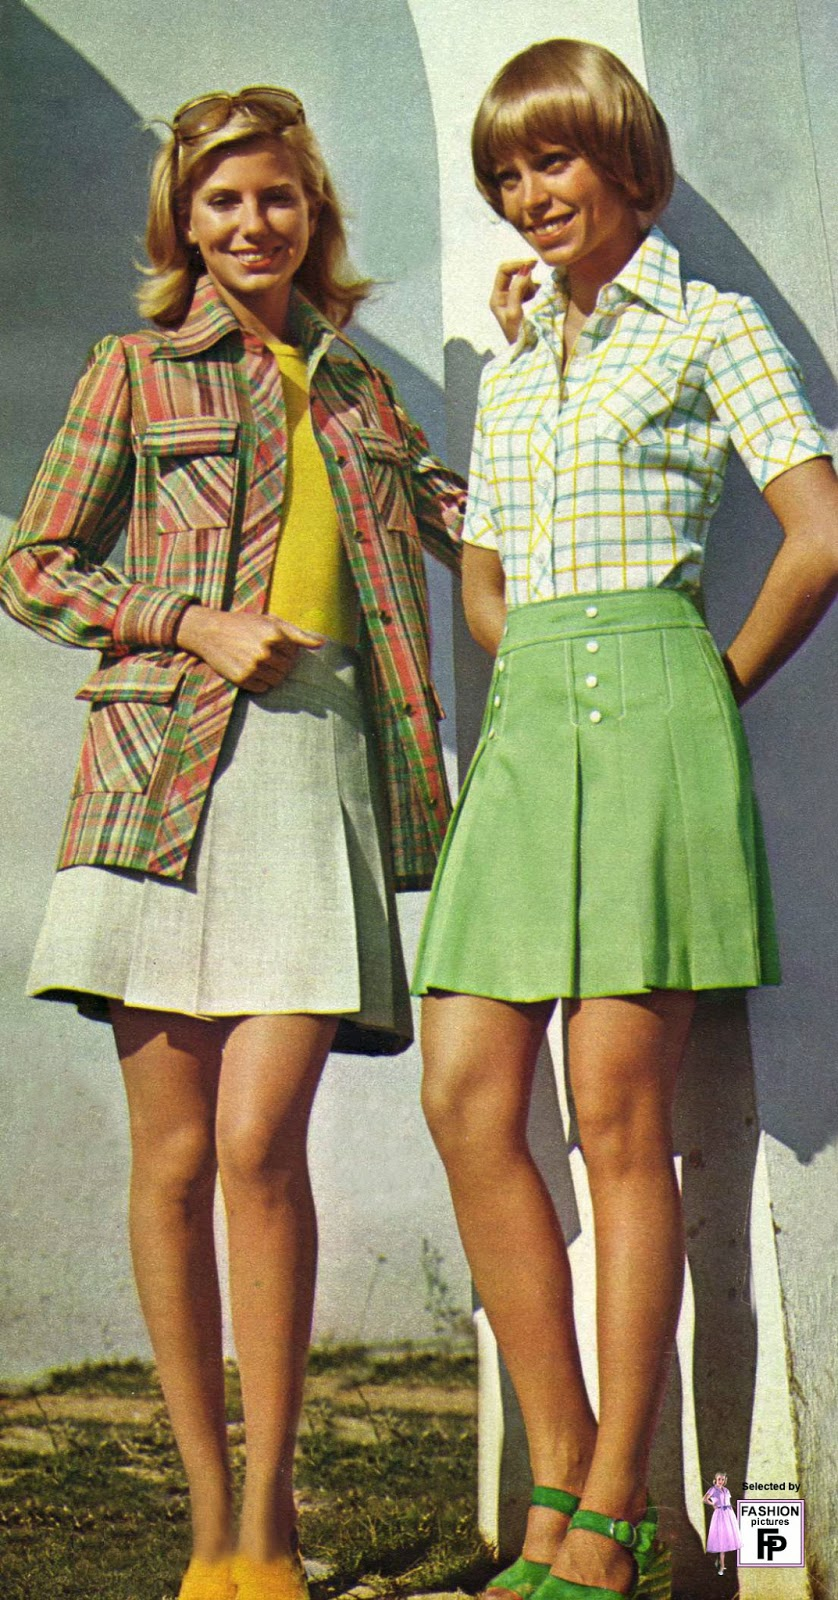 colorful womens street fashions in the early 1970s